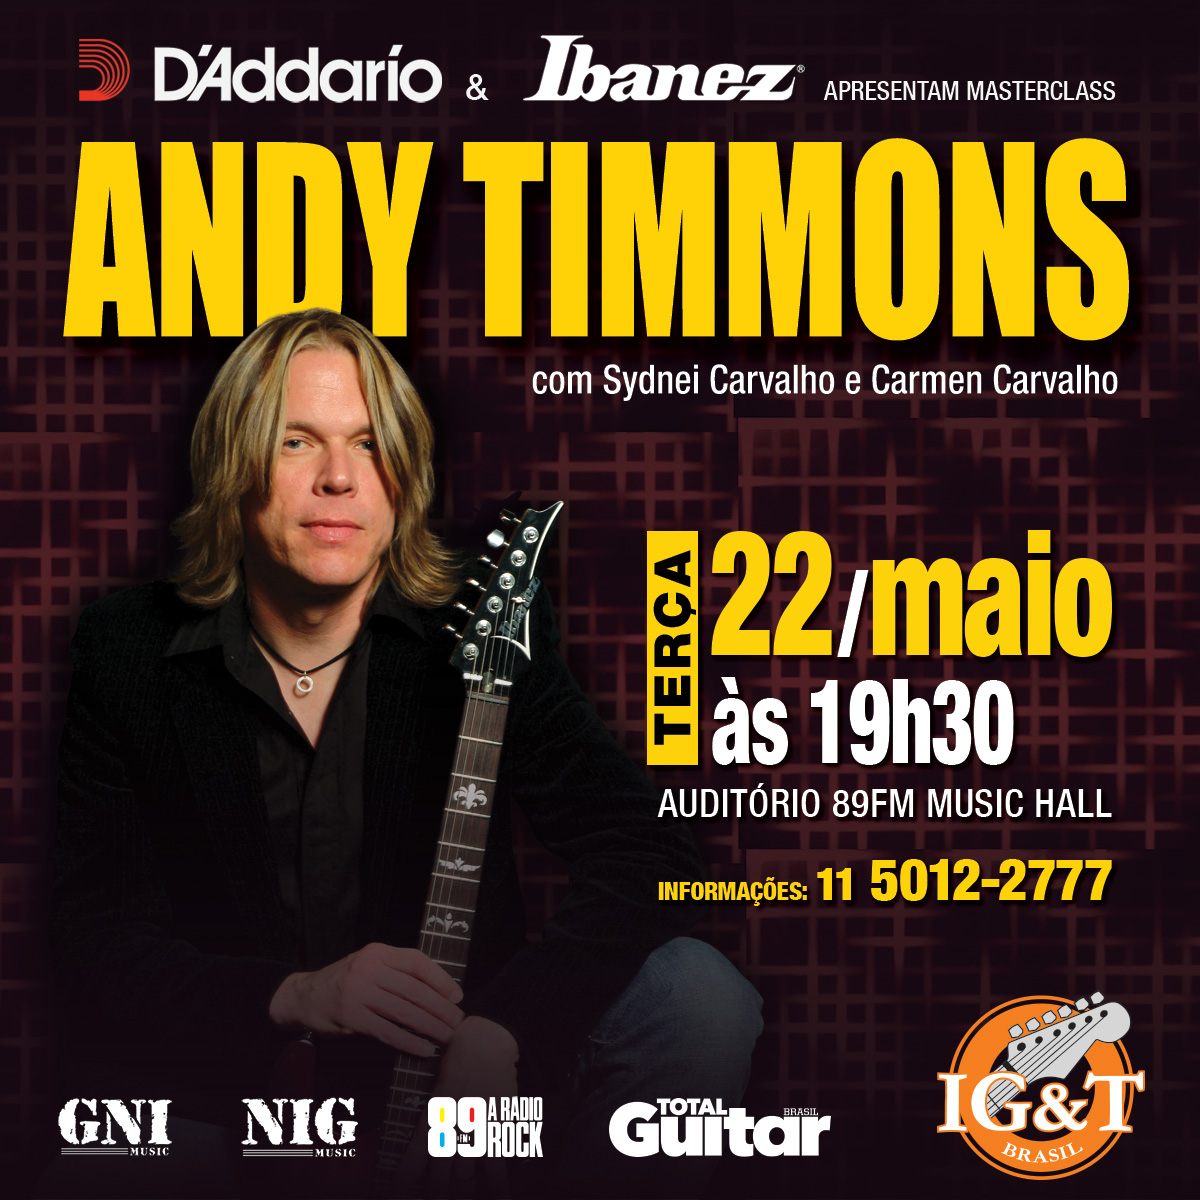 Masterclass Andy Timmons na EM&T